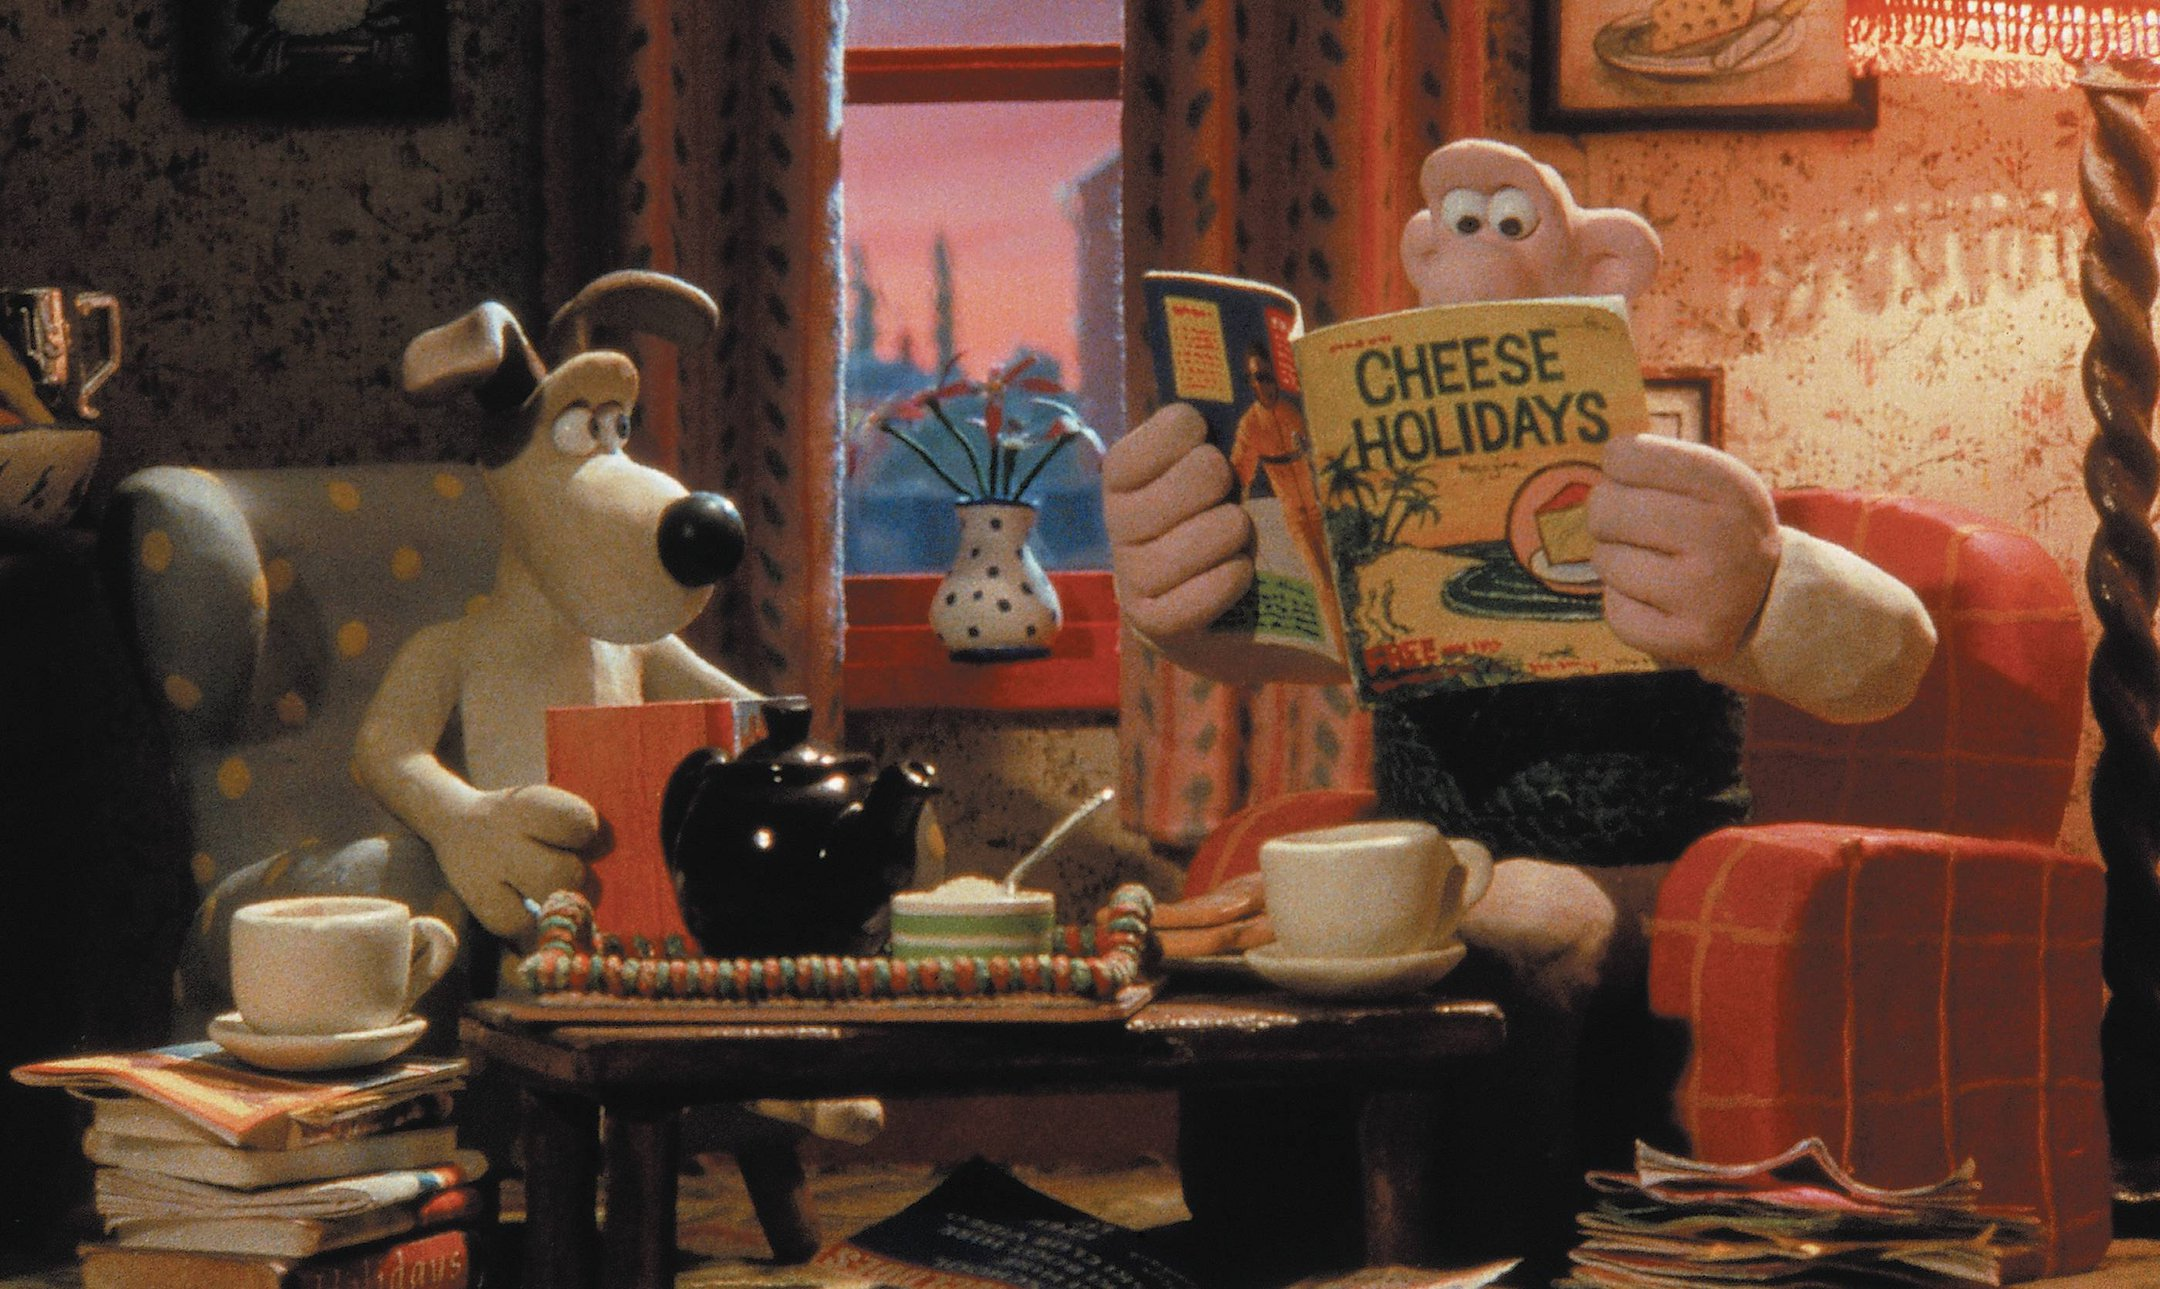 Wallace and Gromit in 'A Grand Day Out' (1989)